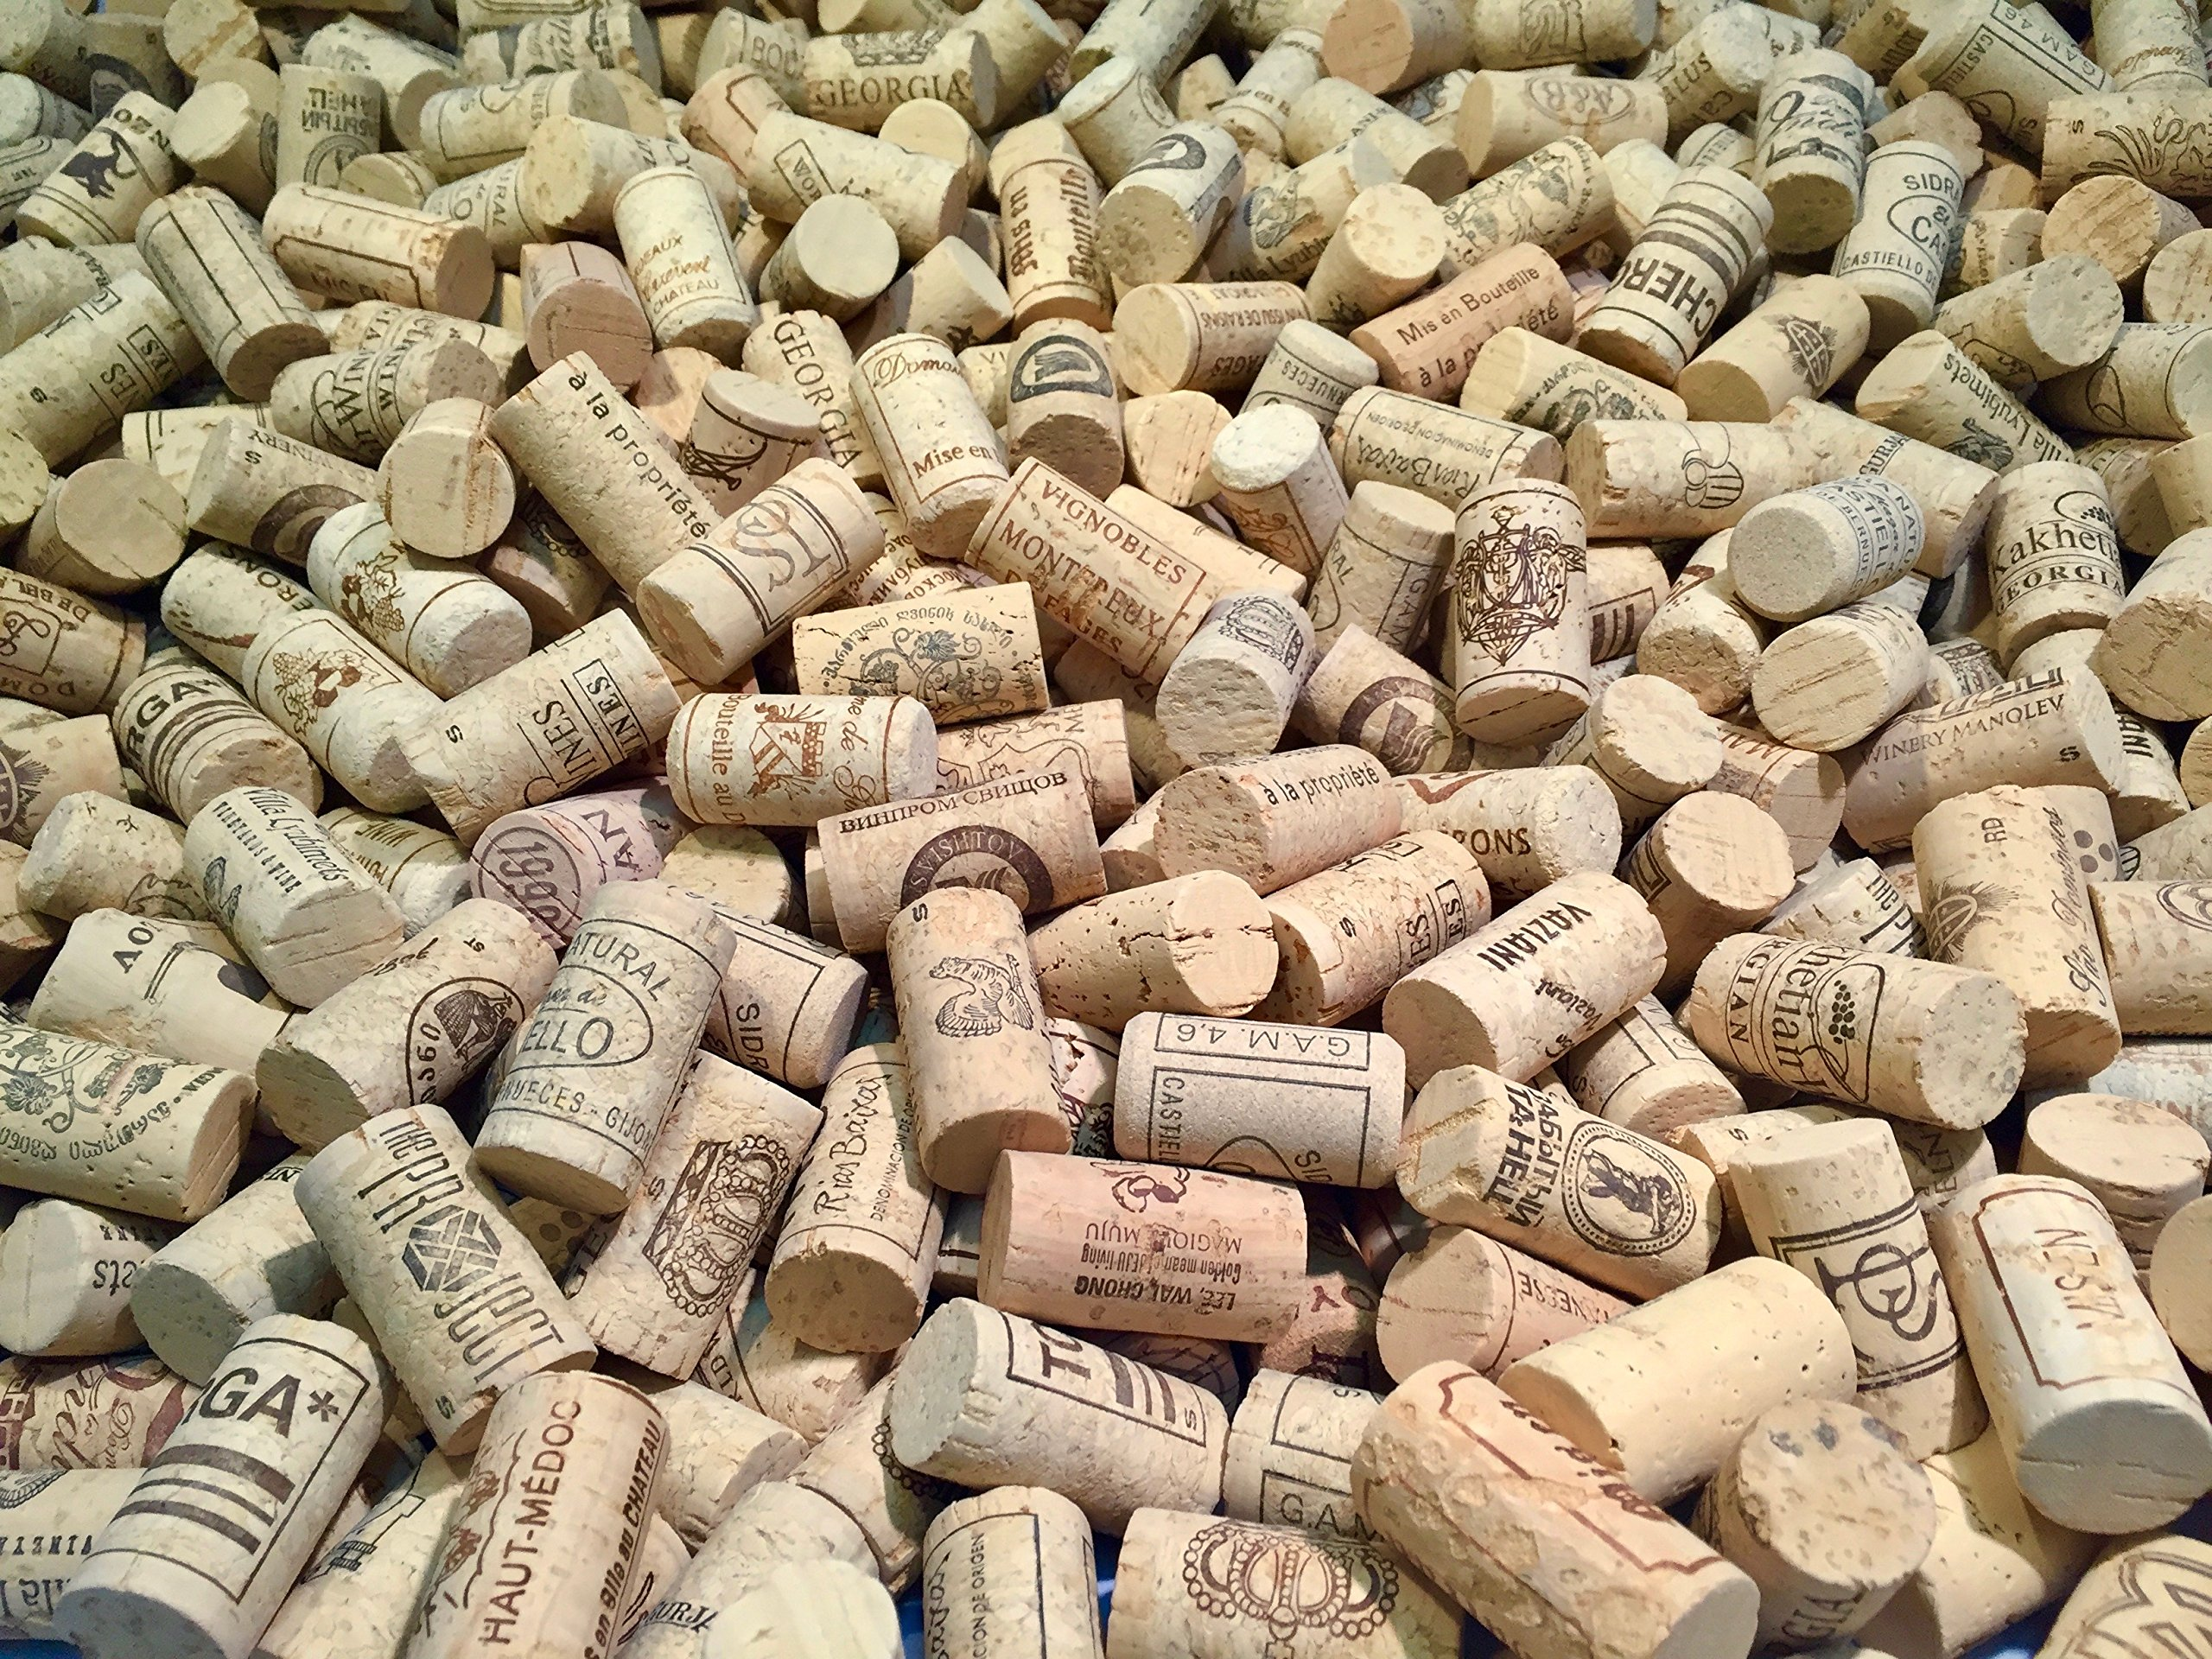 Wine Corks | Brand New, Authentic, All Natural | Printed, Winery-Marked, Craft Grade | Uncirculated, Uniform & Clean | Excellent for Crafting & Decor | Pack of 50/100/150/200 Premium Wine Corks (500) by Corkshire Hathaway (Image #6)